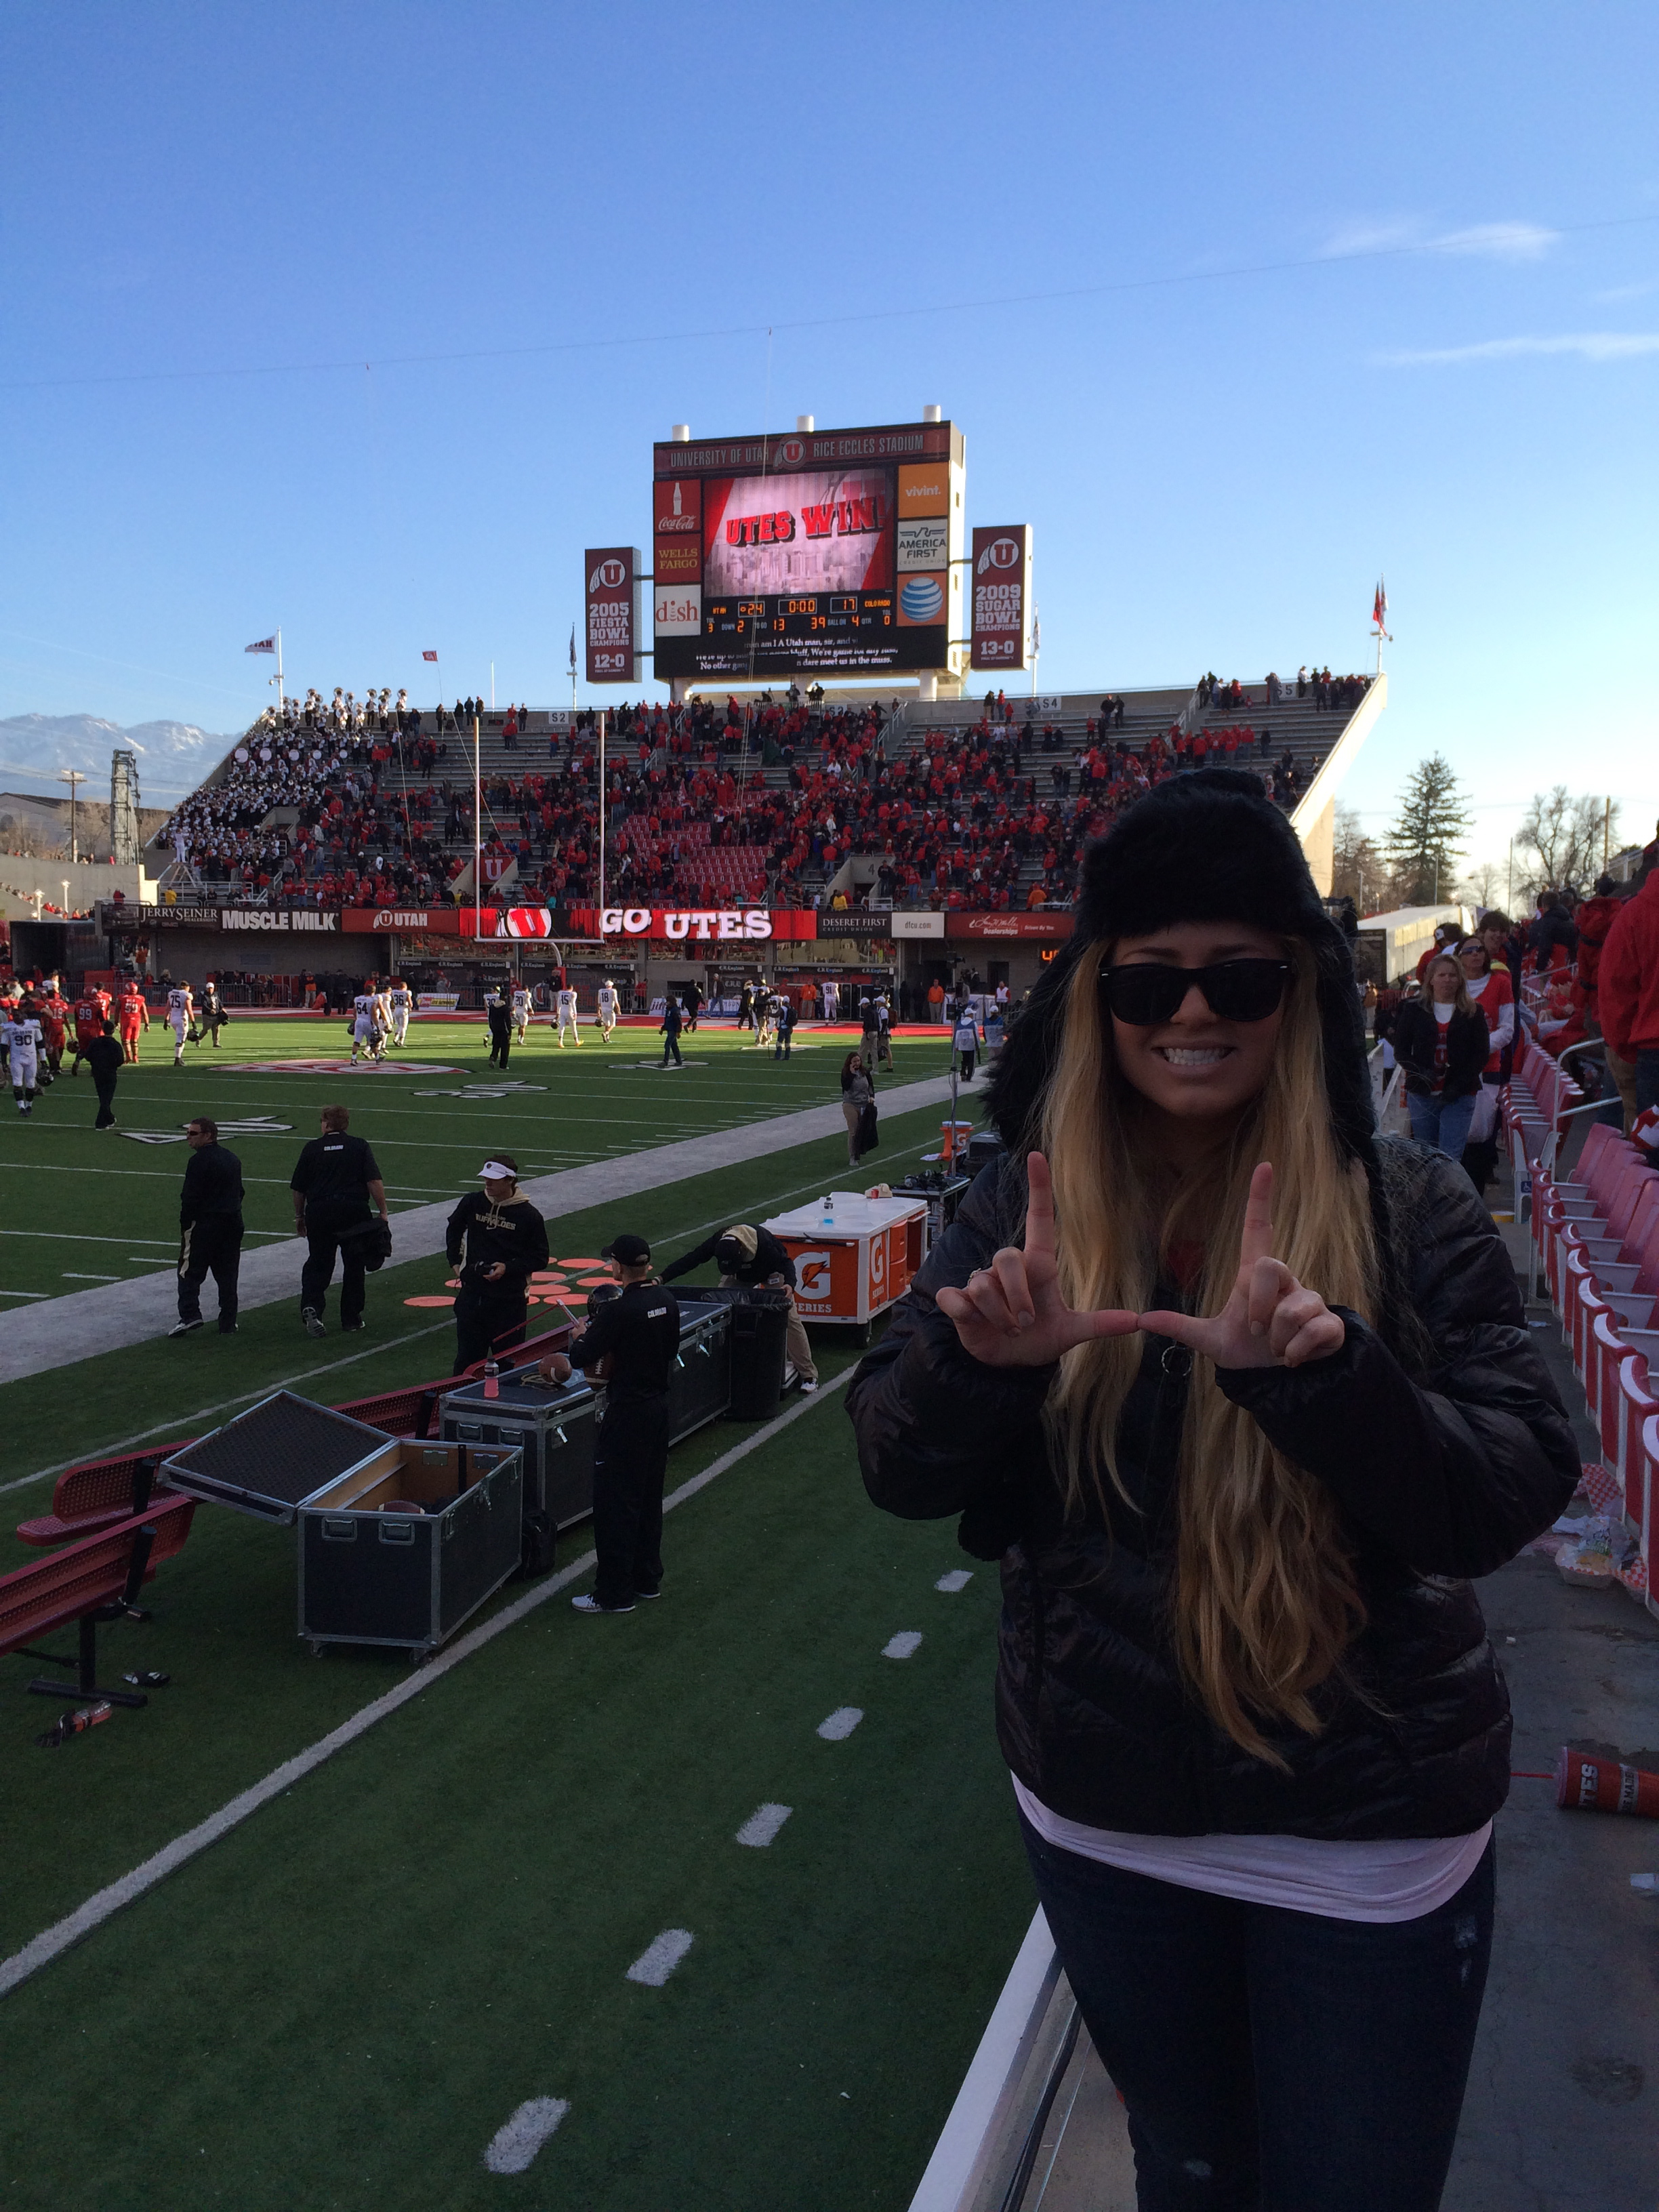 Go Utes! Saturday November 30, 2013 438